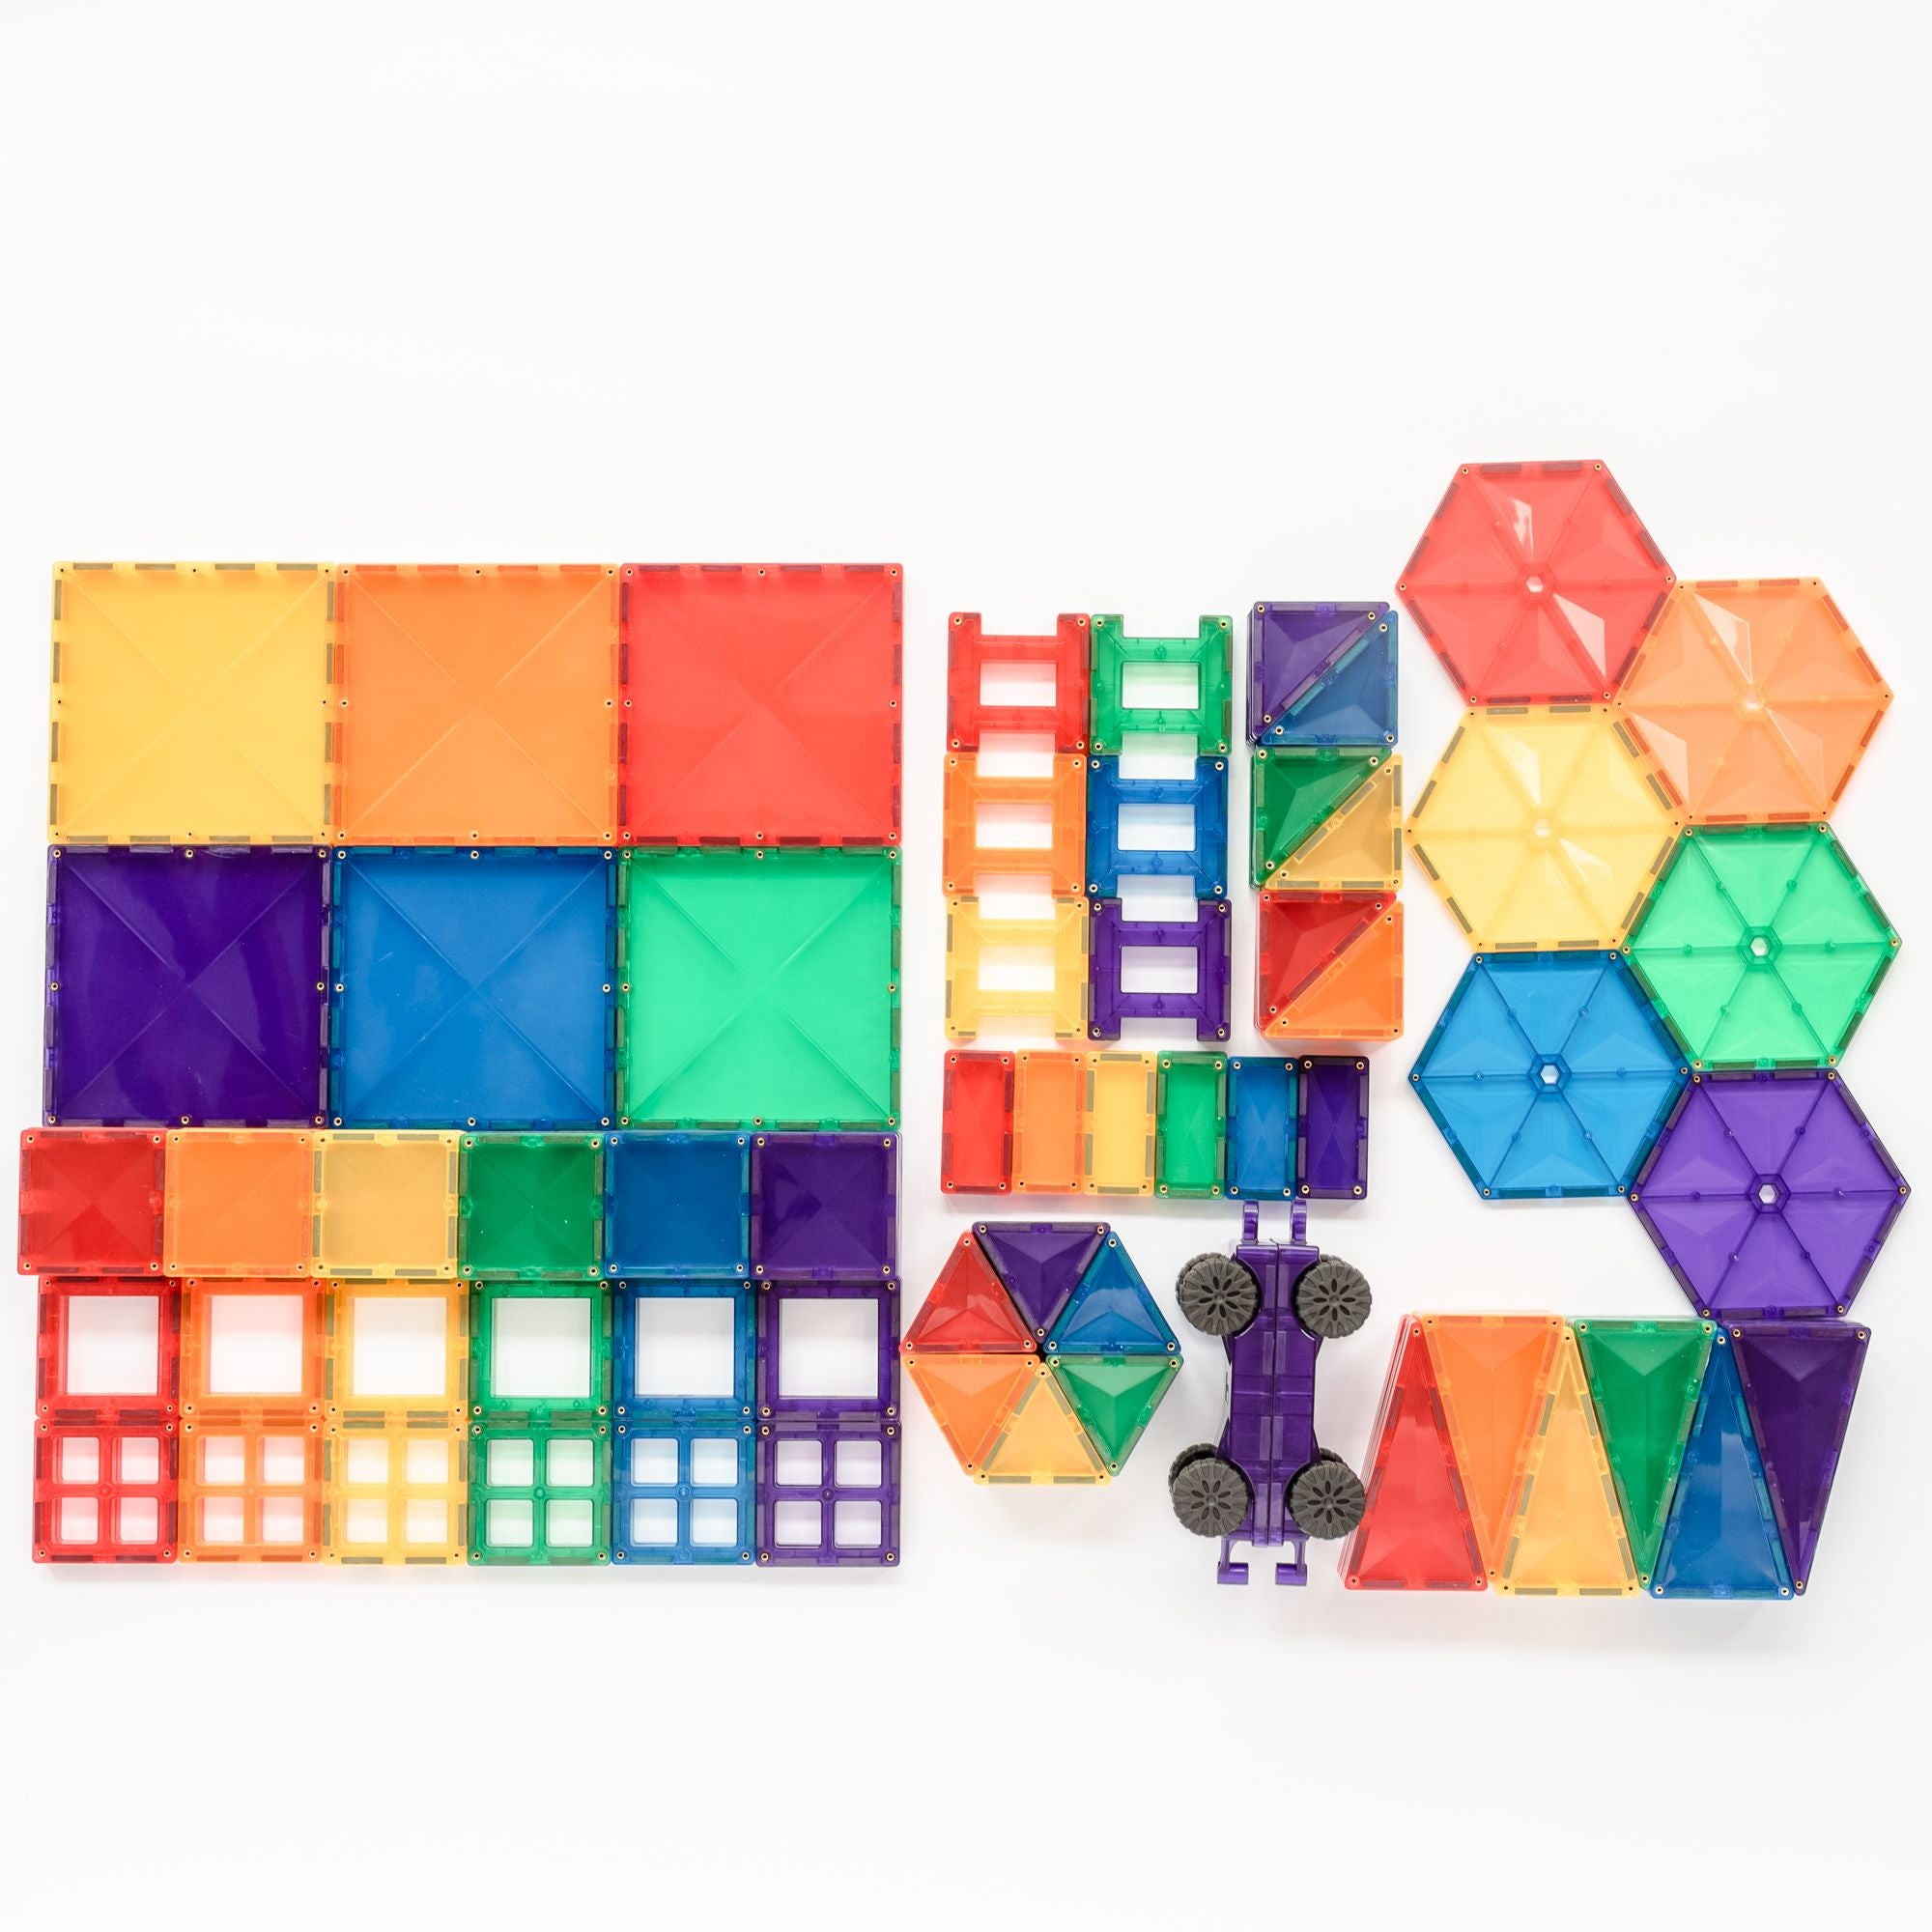 Children_of_the_Wild-Australia Connetix 212 piece Magnetic Tile Mega Pack